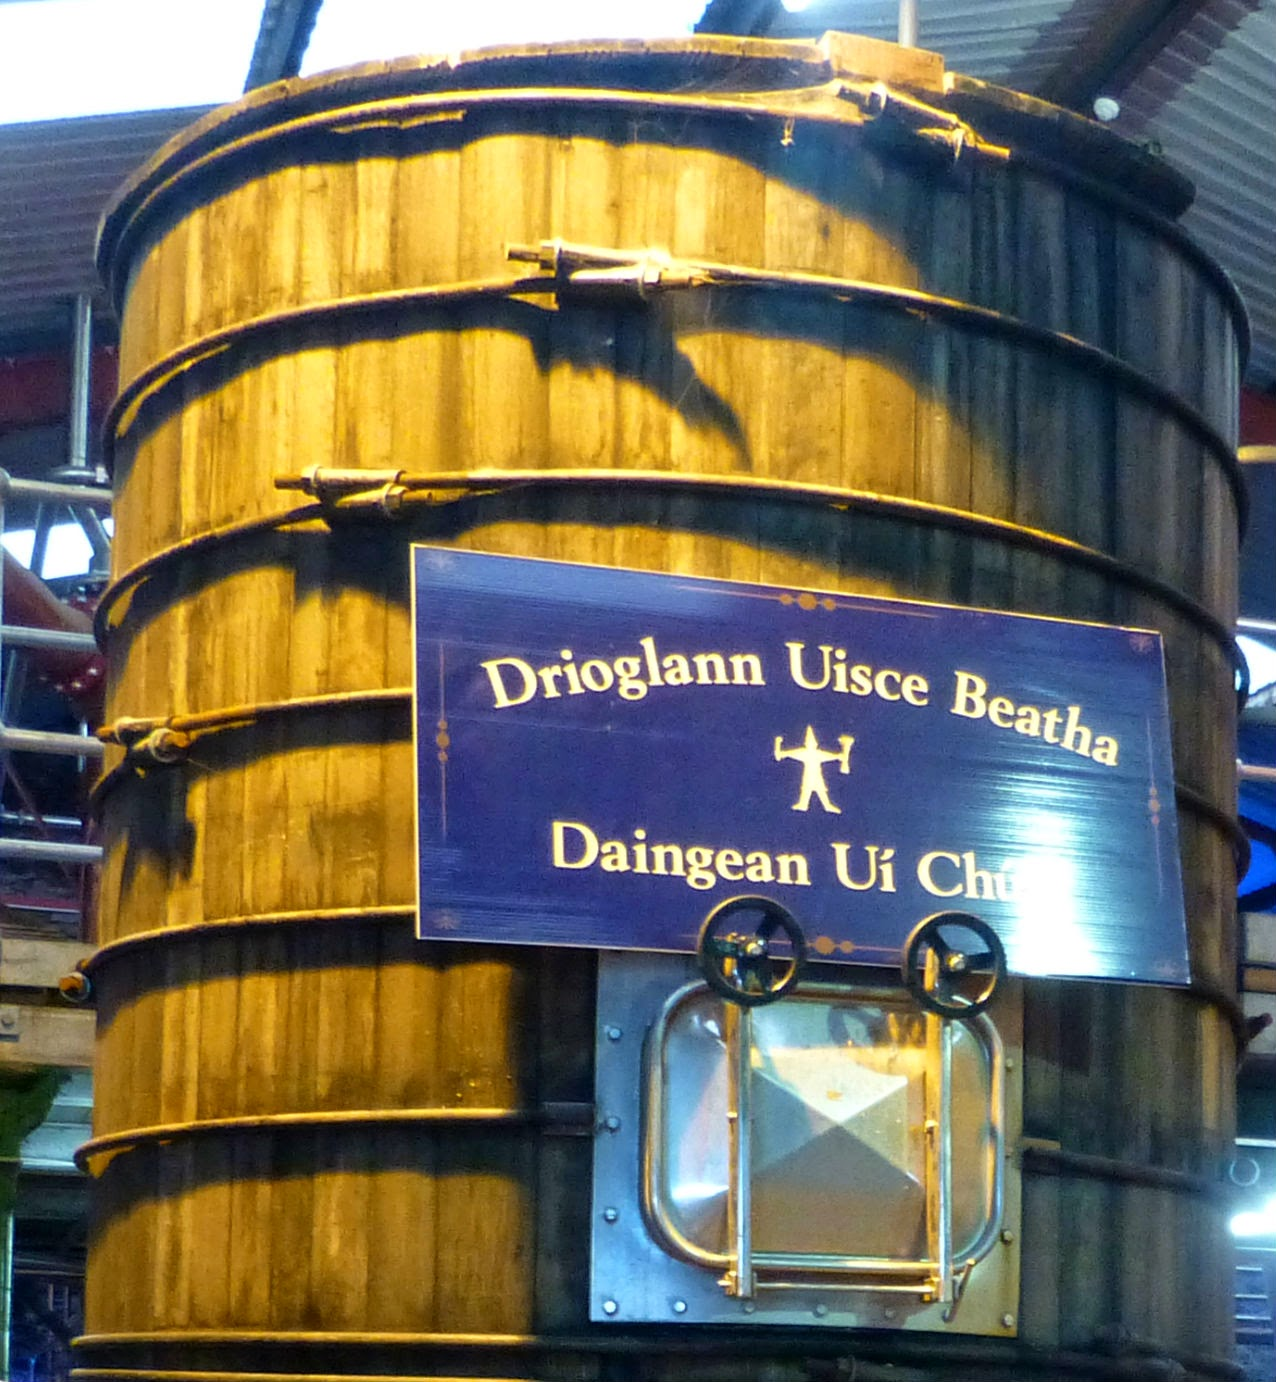 the dingle distillery tour. well worth ten of your euros!